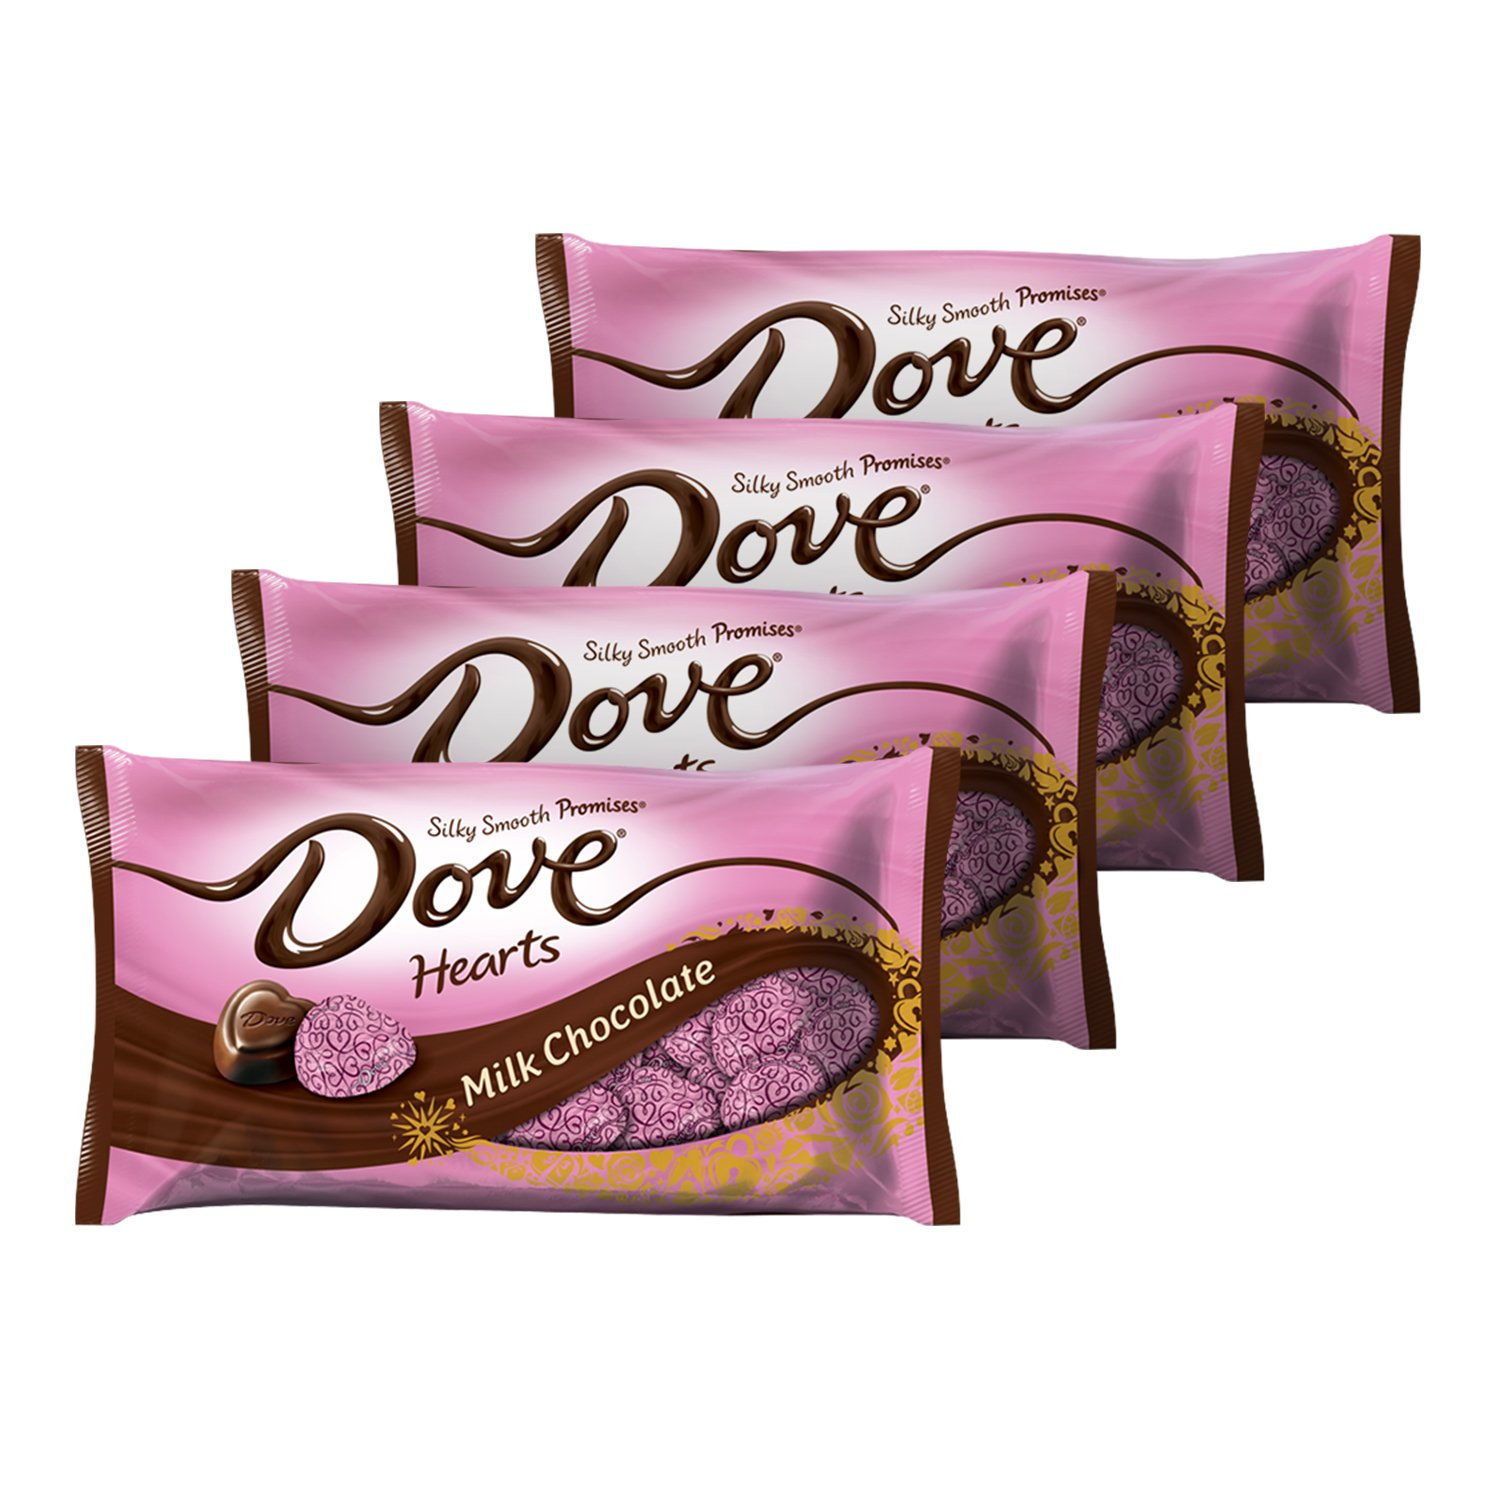 Amazon Com Dove Promises Valentine Milk Chocolate Candy Hearts 8 87 Ounce Bag Pack Of 4 Chocolate Candy Grocery Gourmet Food